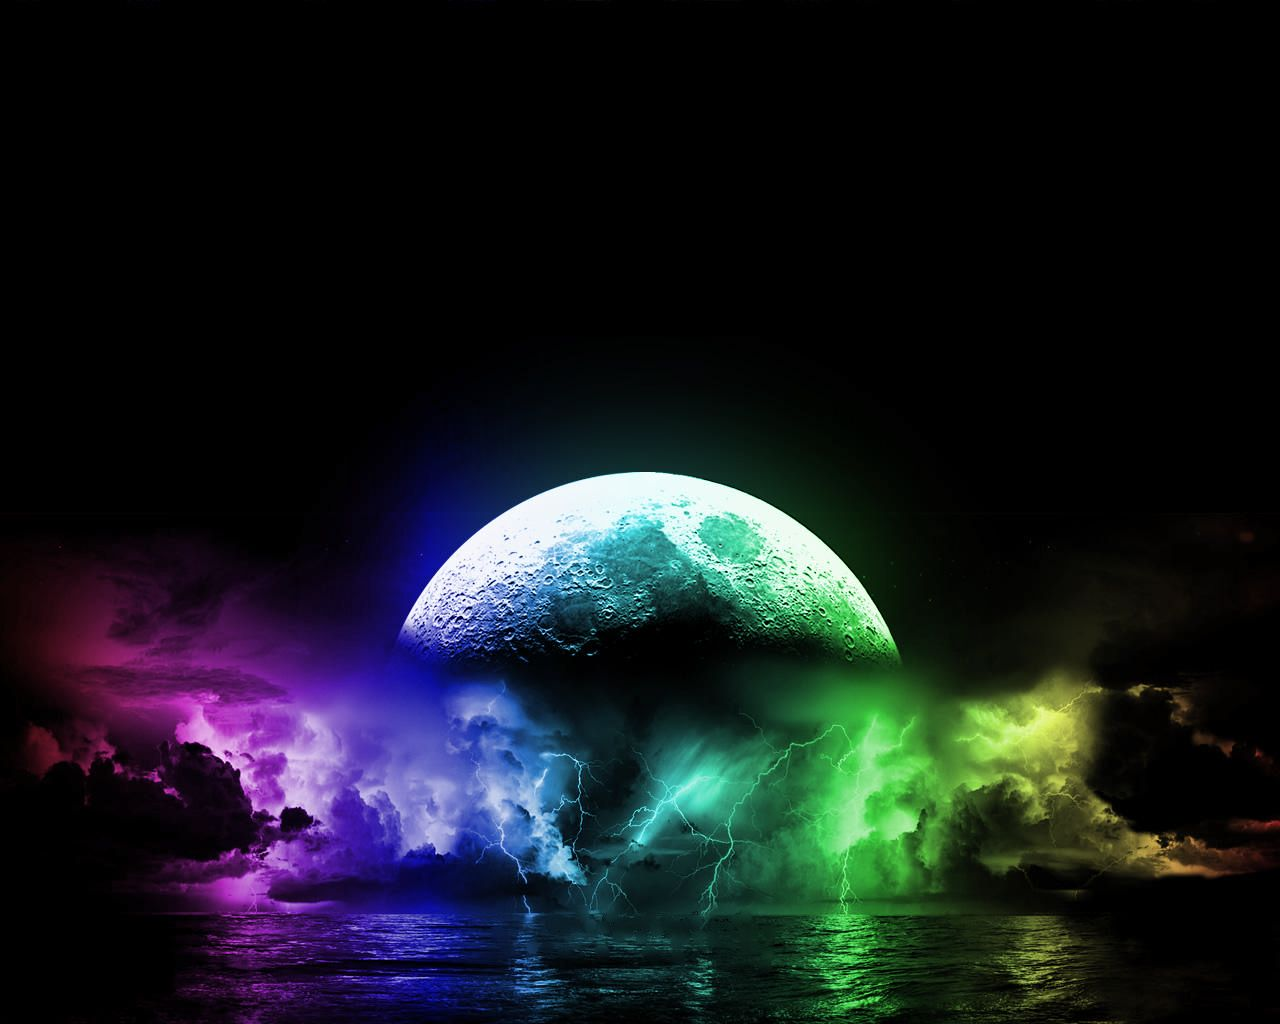 Cool Lightning Backgrounds | ... , download wallpaper, A really cool and colorful moon and lightning